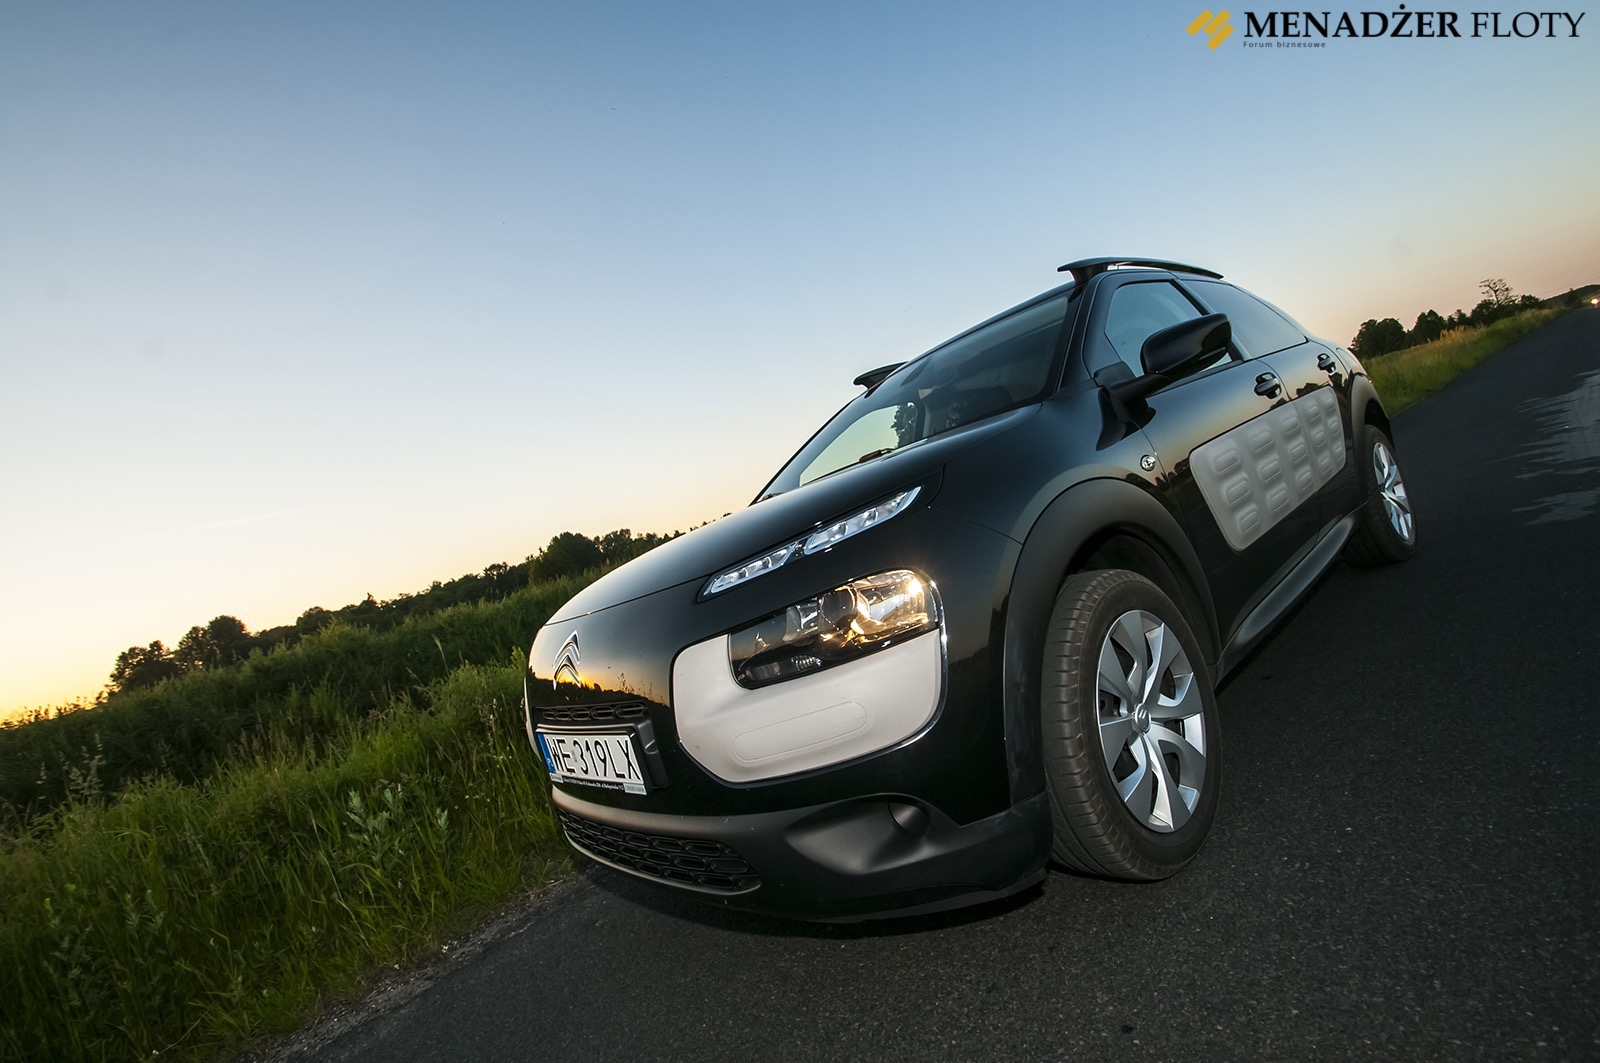 test citroen c4 cactus outsider z klas menad er floty. Black Bedroom Furniture Sets. Home Design Ideas